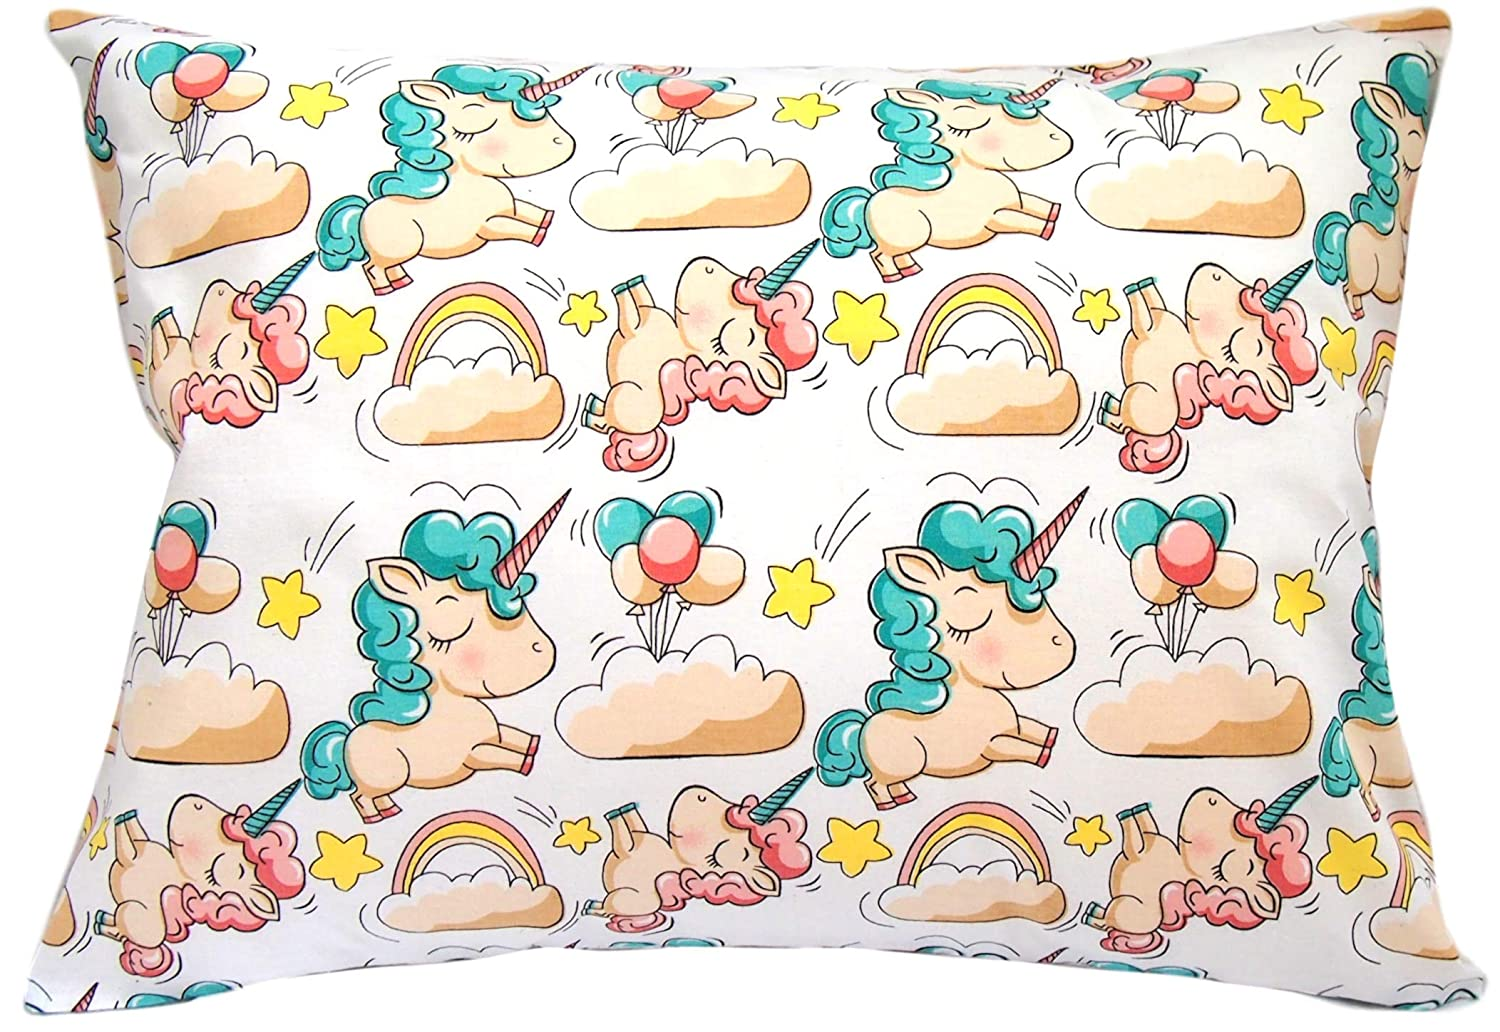 Soft Pillow Cover for Wonderful Sleep and Dreams Kids Toddler Pillowcase 13x18 by Comfy Turtles Pink Castle 100/% Cotton Design for Boys and Girls